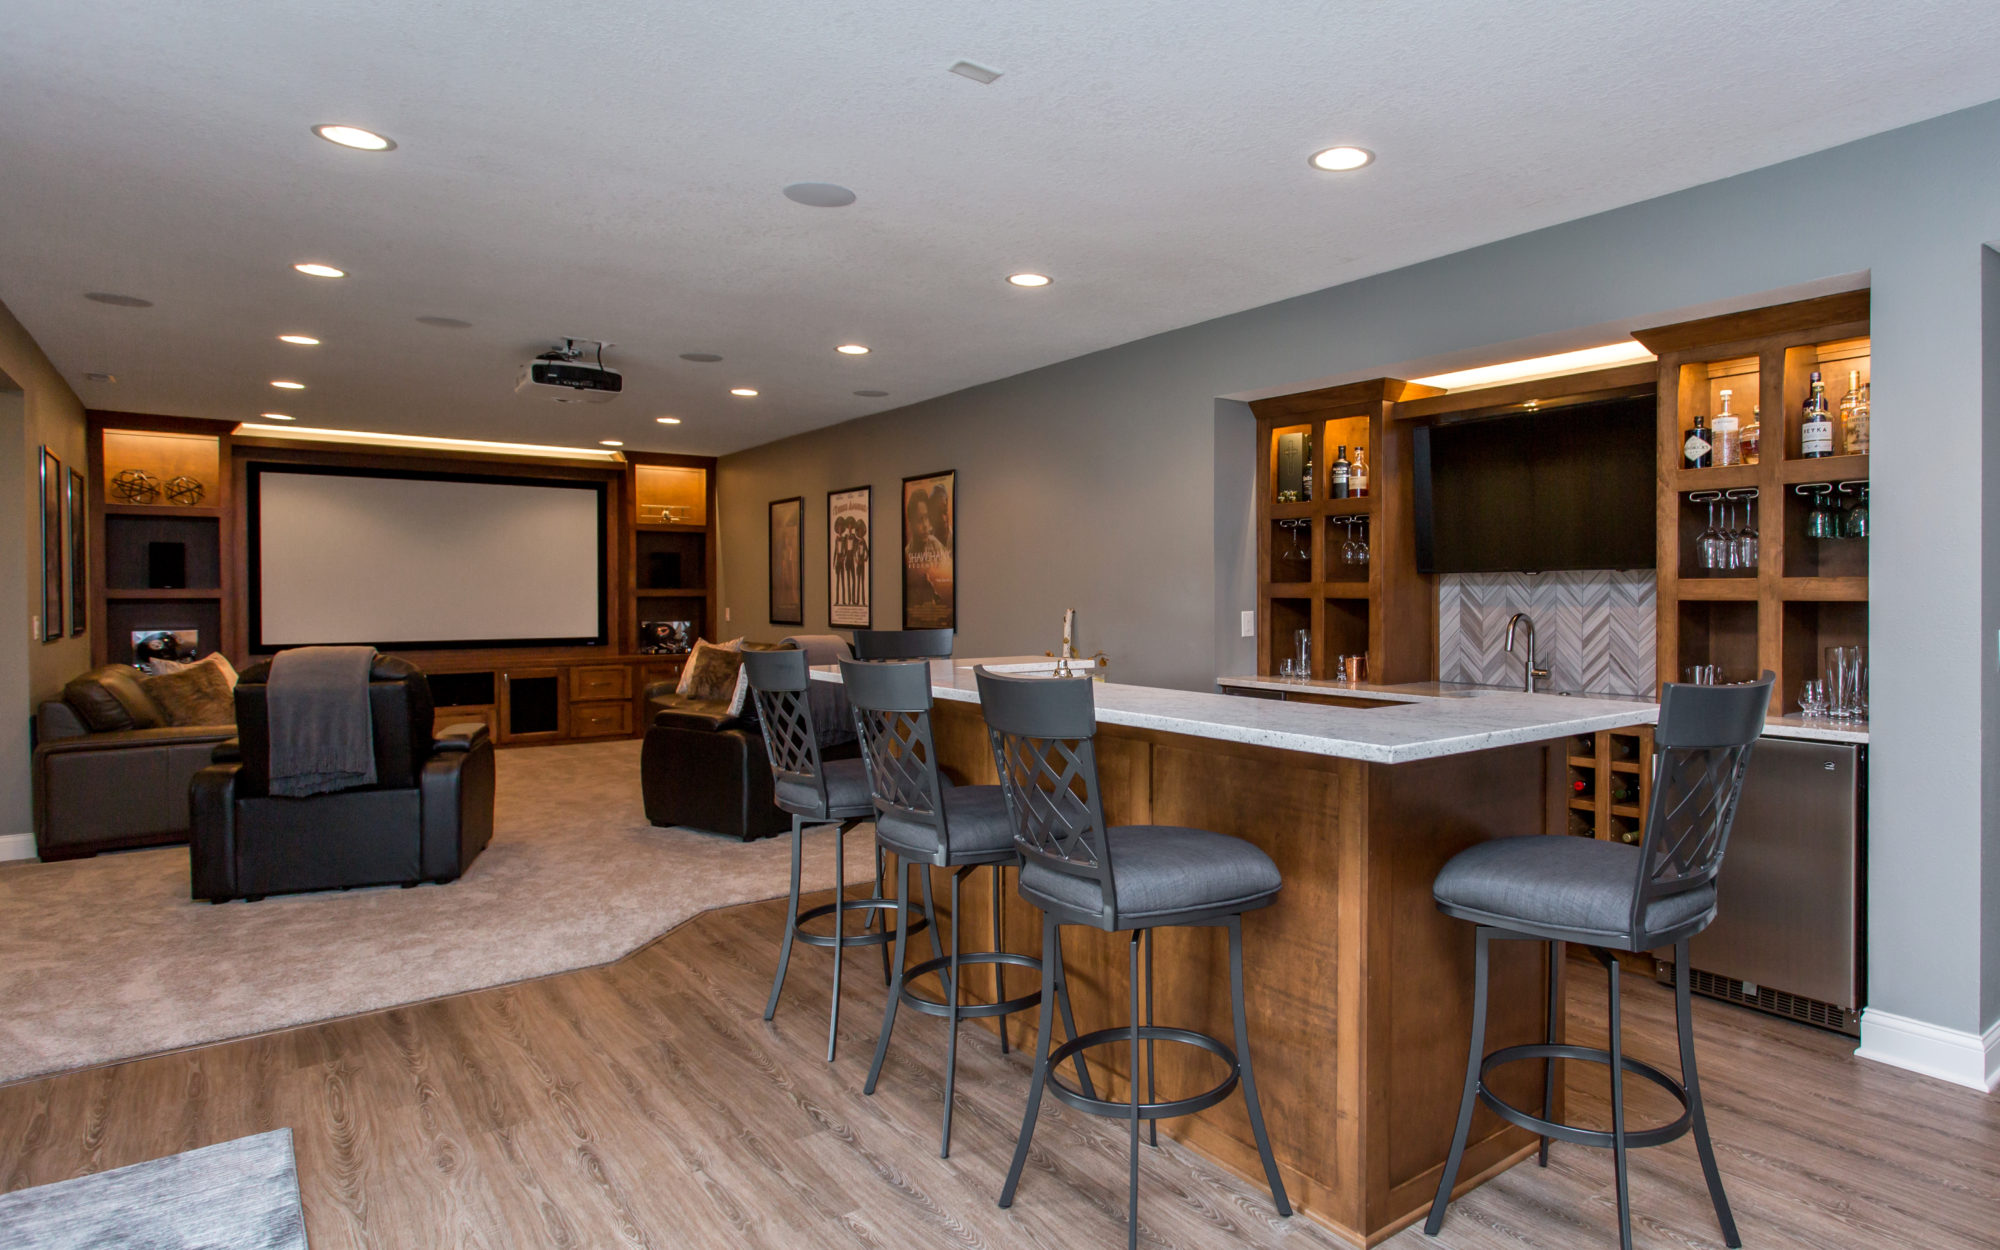 basement remodelling. Contemporary Remodelling Featured Des Moines Basement Remodels On Remodelling